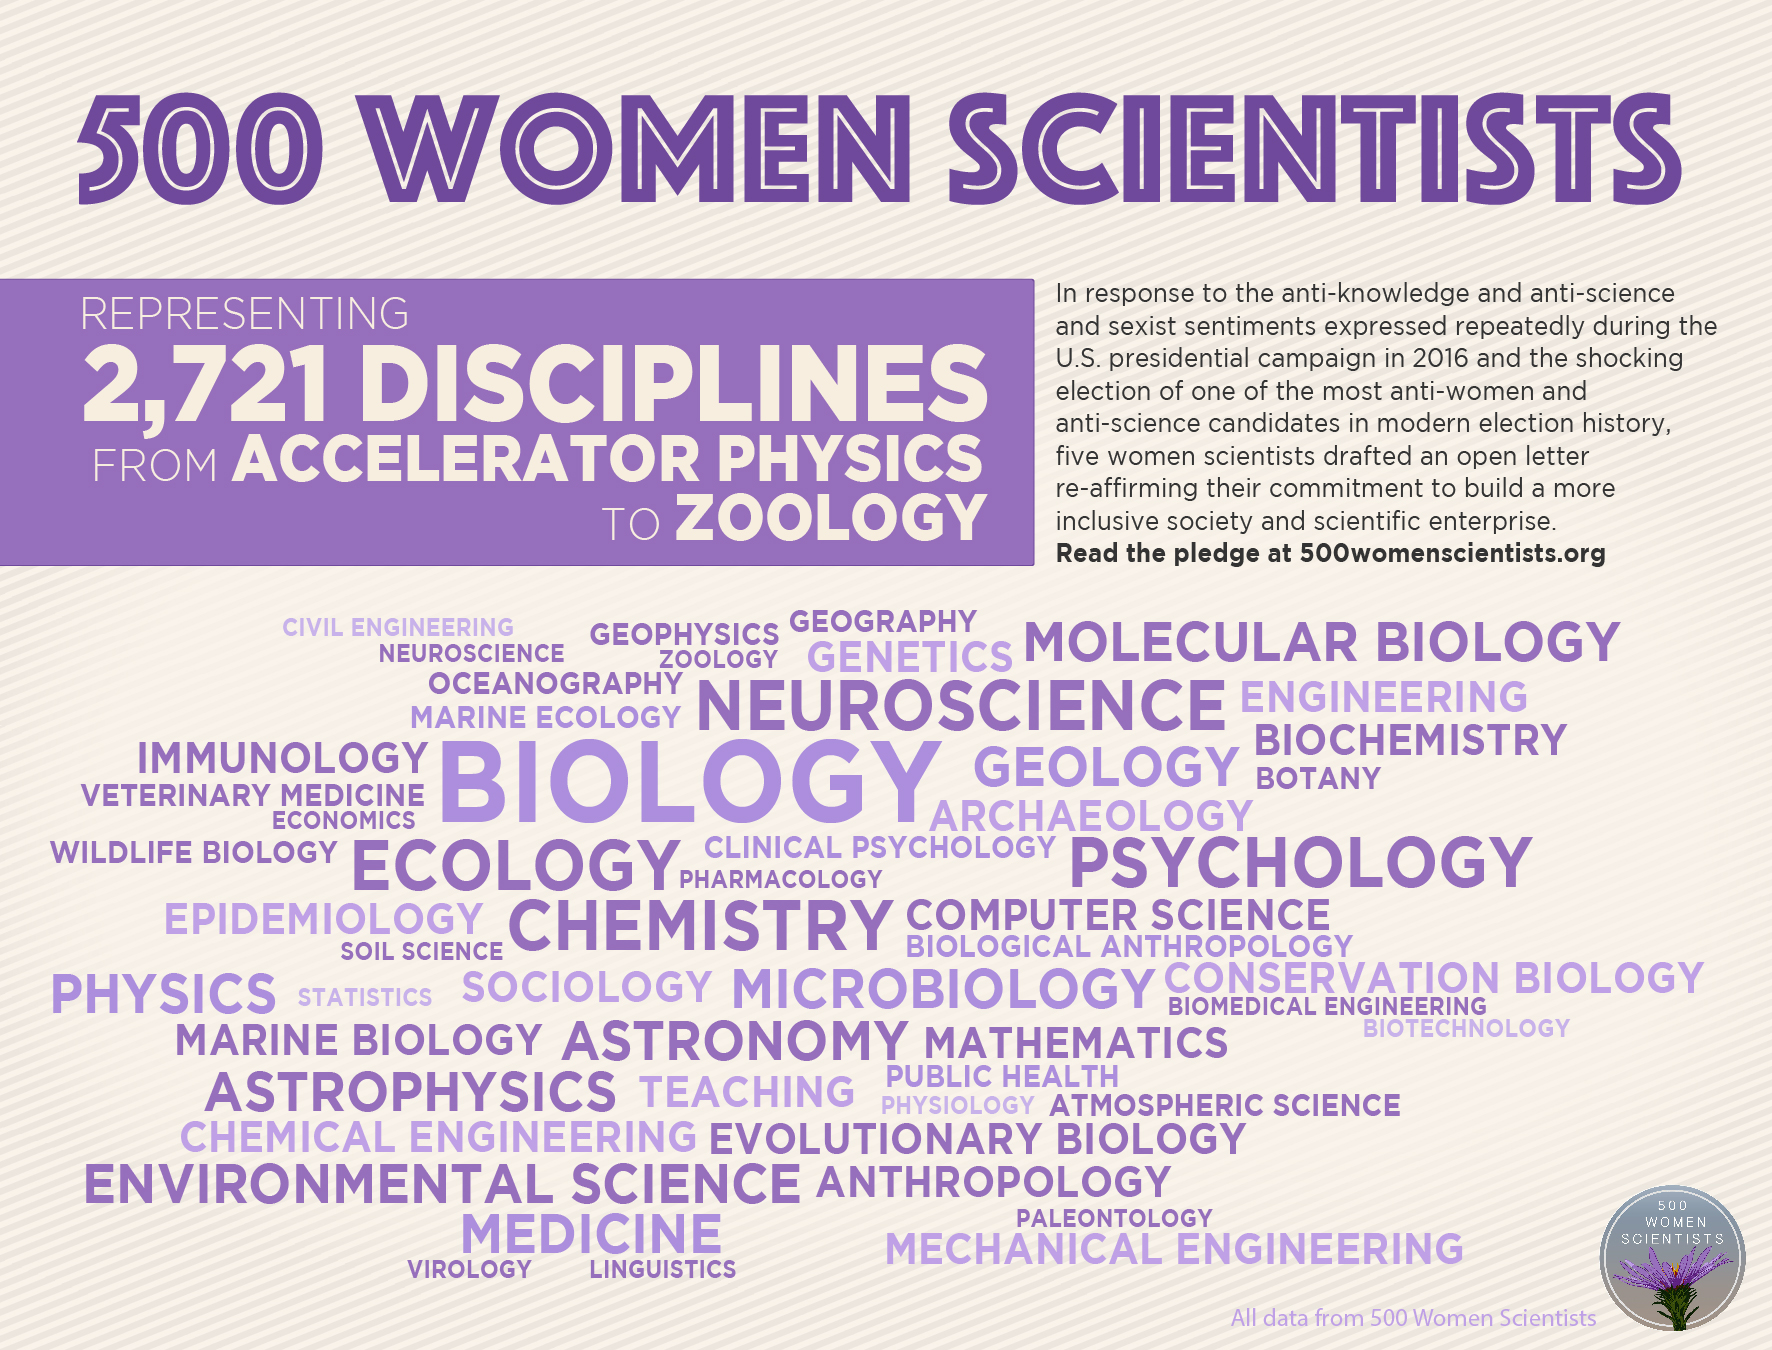 500 Women Scientists infographic (disciplines detail)